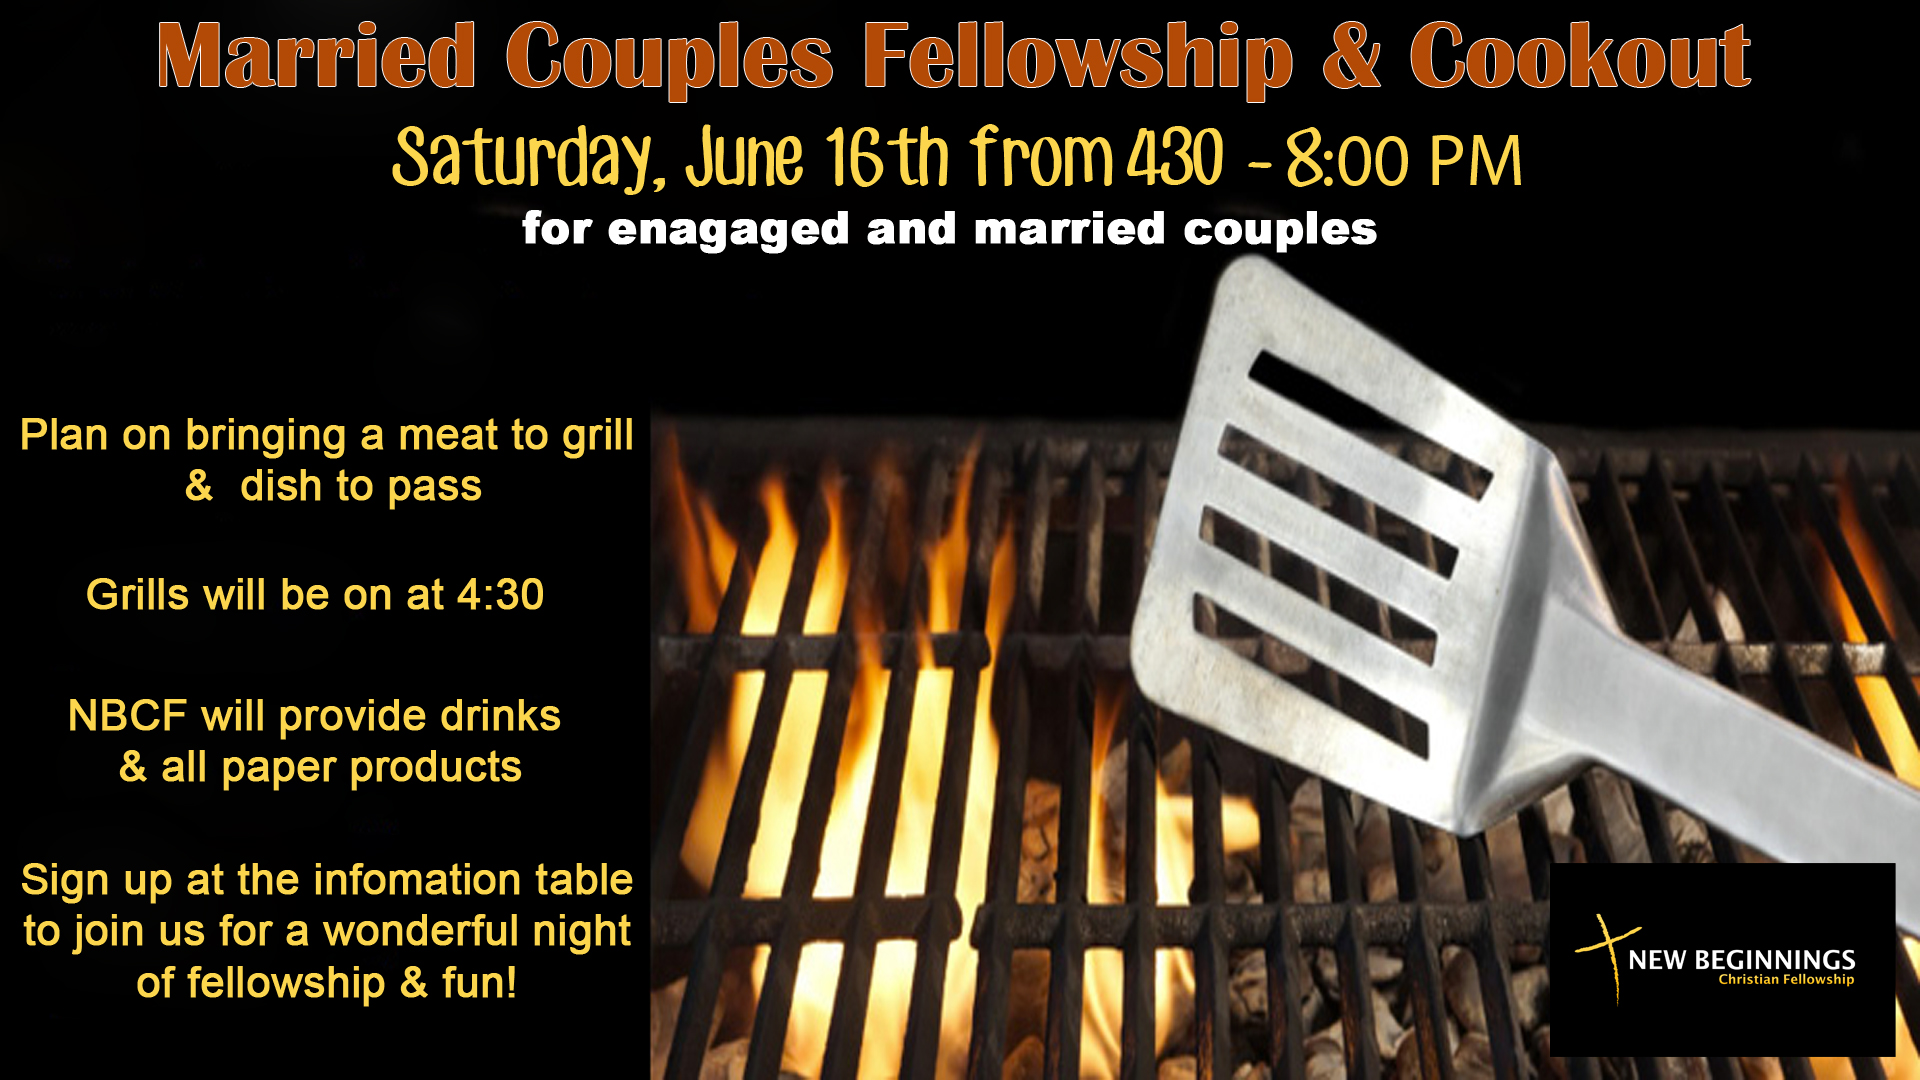 Married Couples Fellowship Cookout